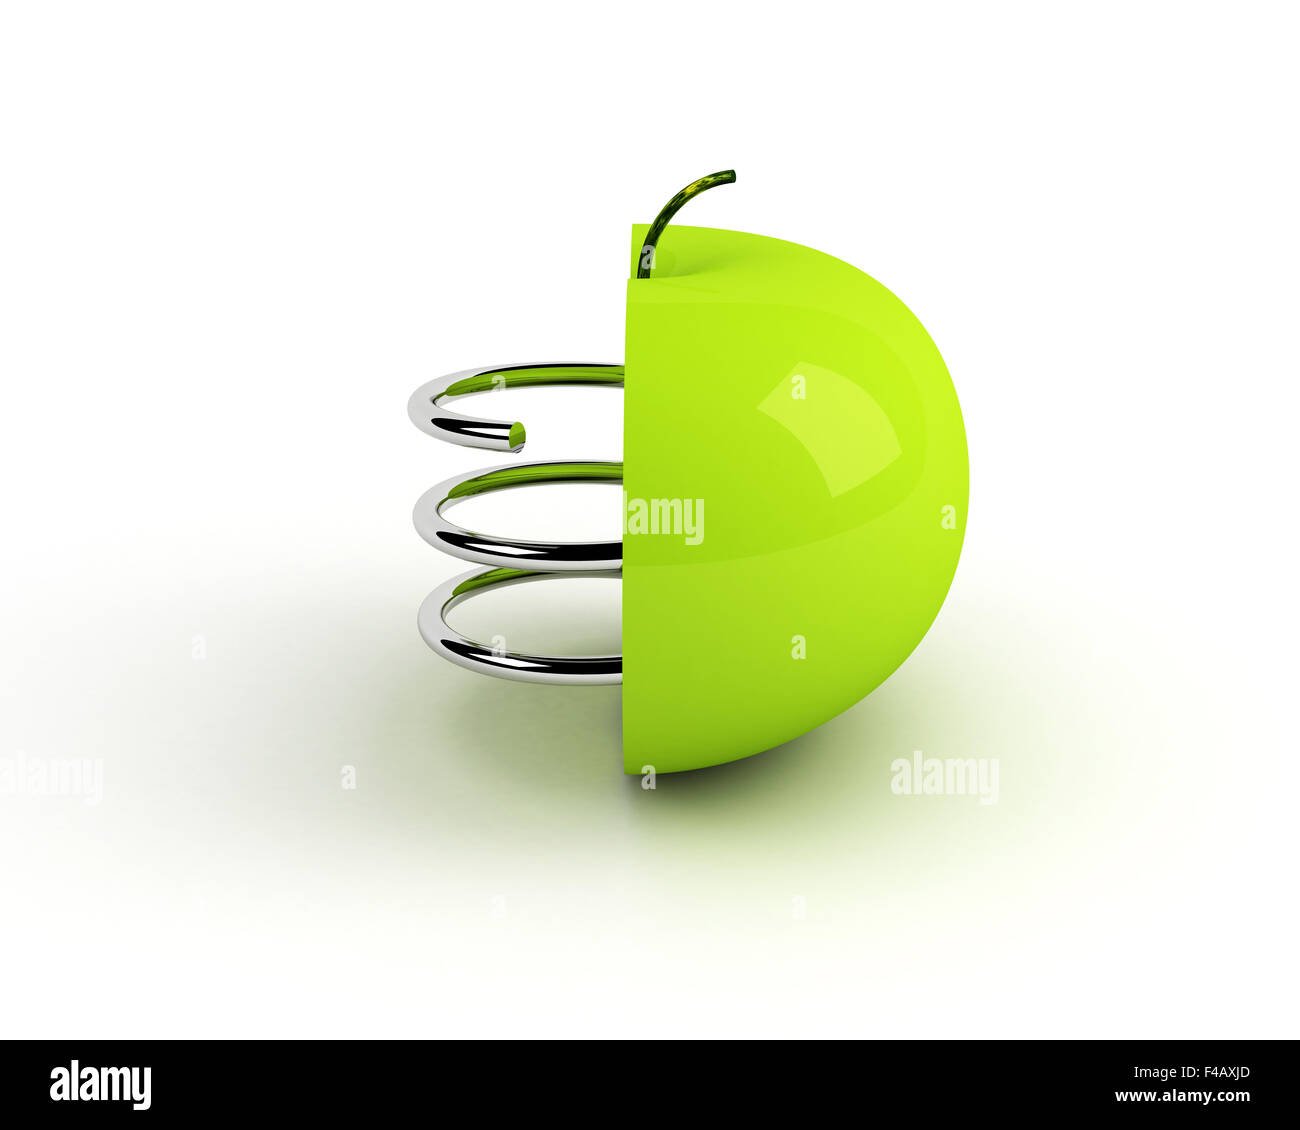 artificial apple. technological concept - Stock Image